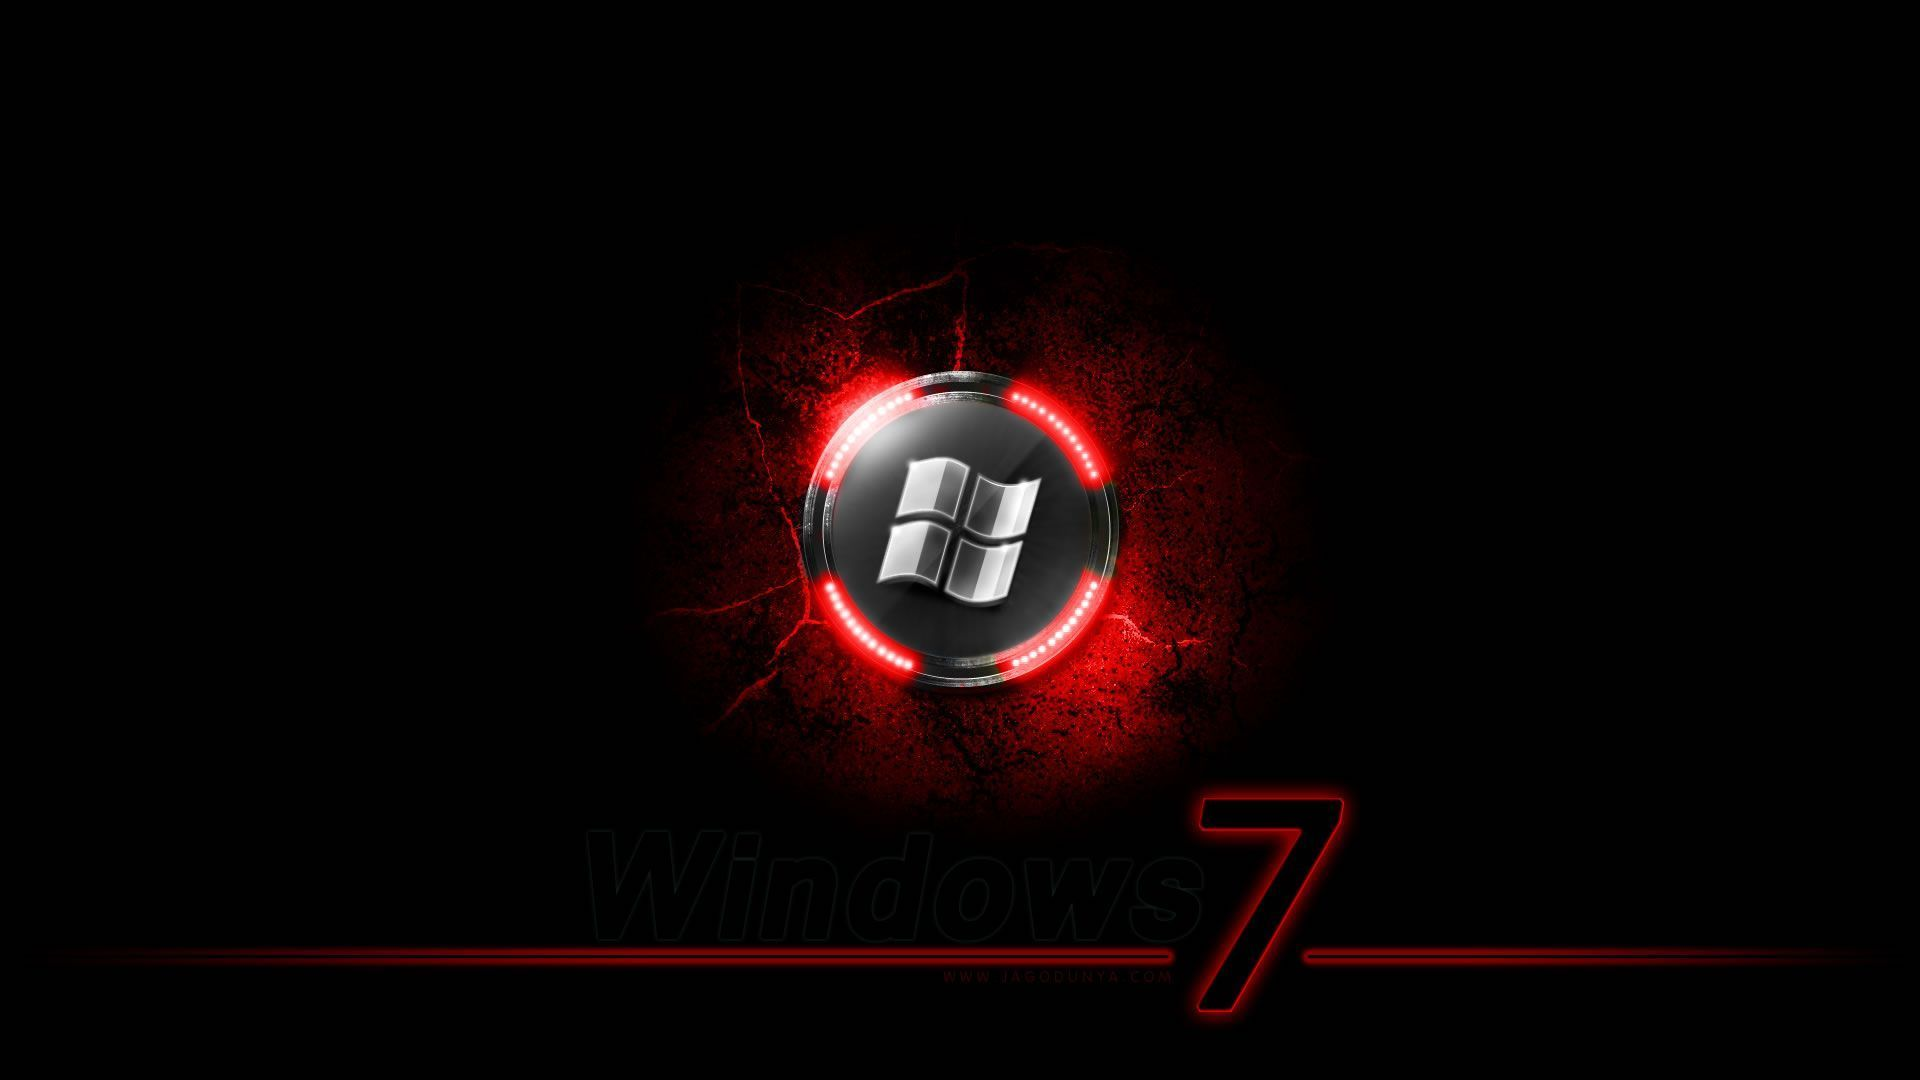 Windows RED Wallpaper By DaBestFox On DeviantArt HD Wallpapers